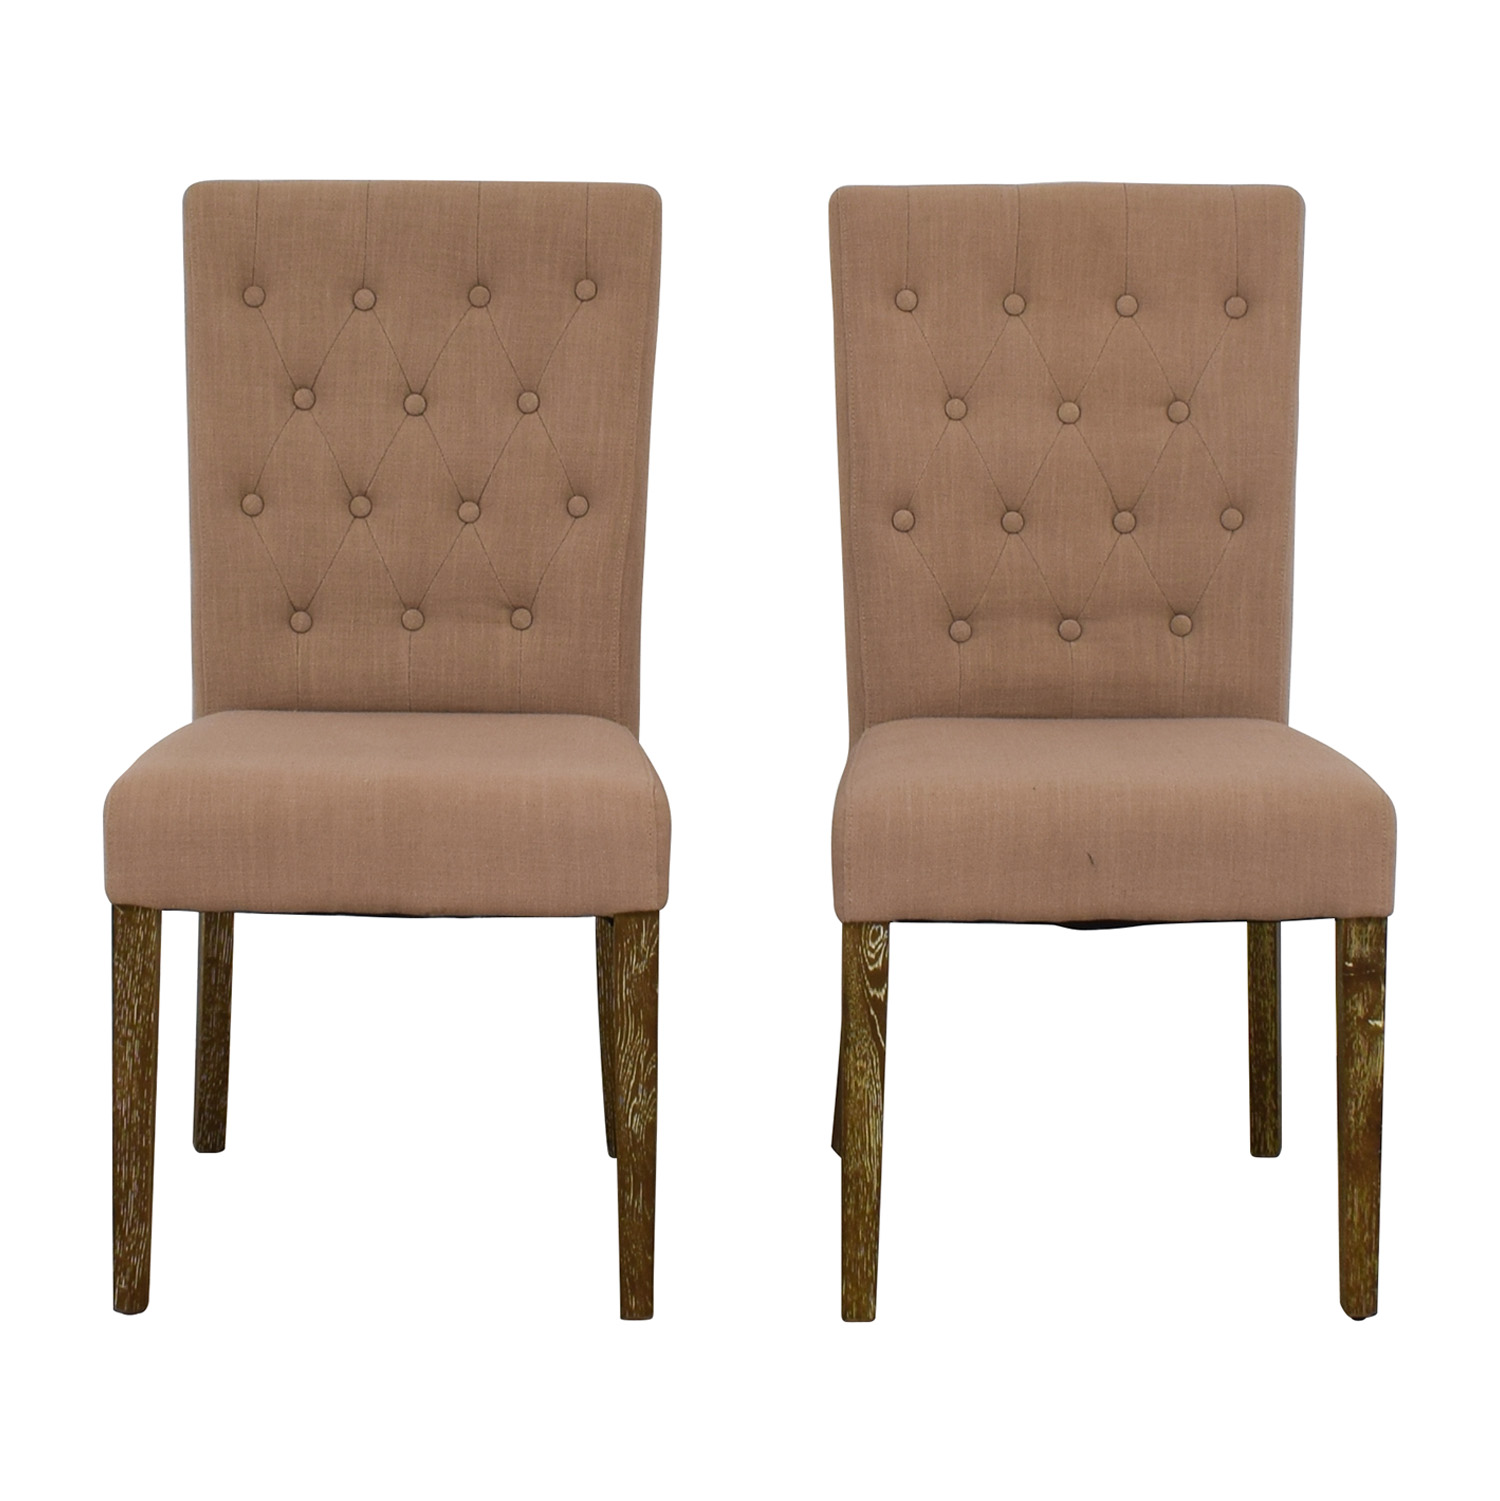 Classic Concepts Classic Concepts Tufted Beige Linen Dining Chairs second hand